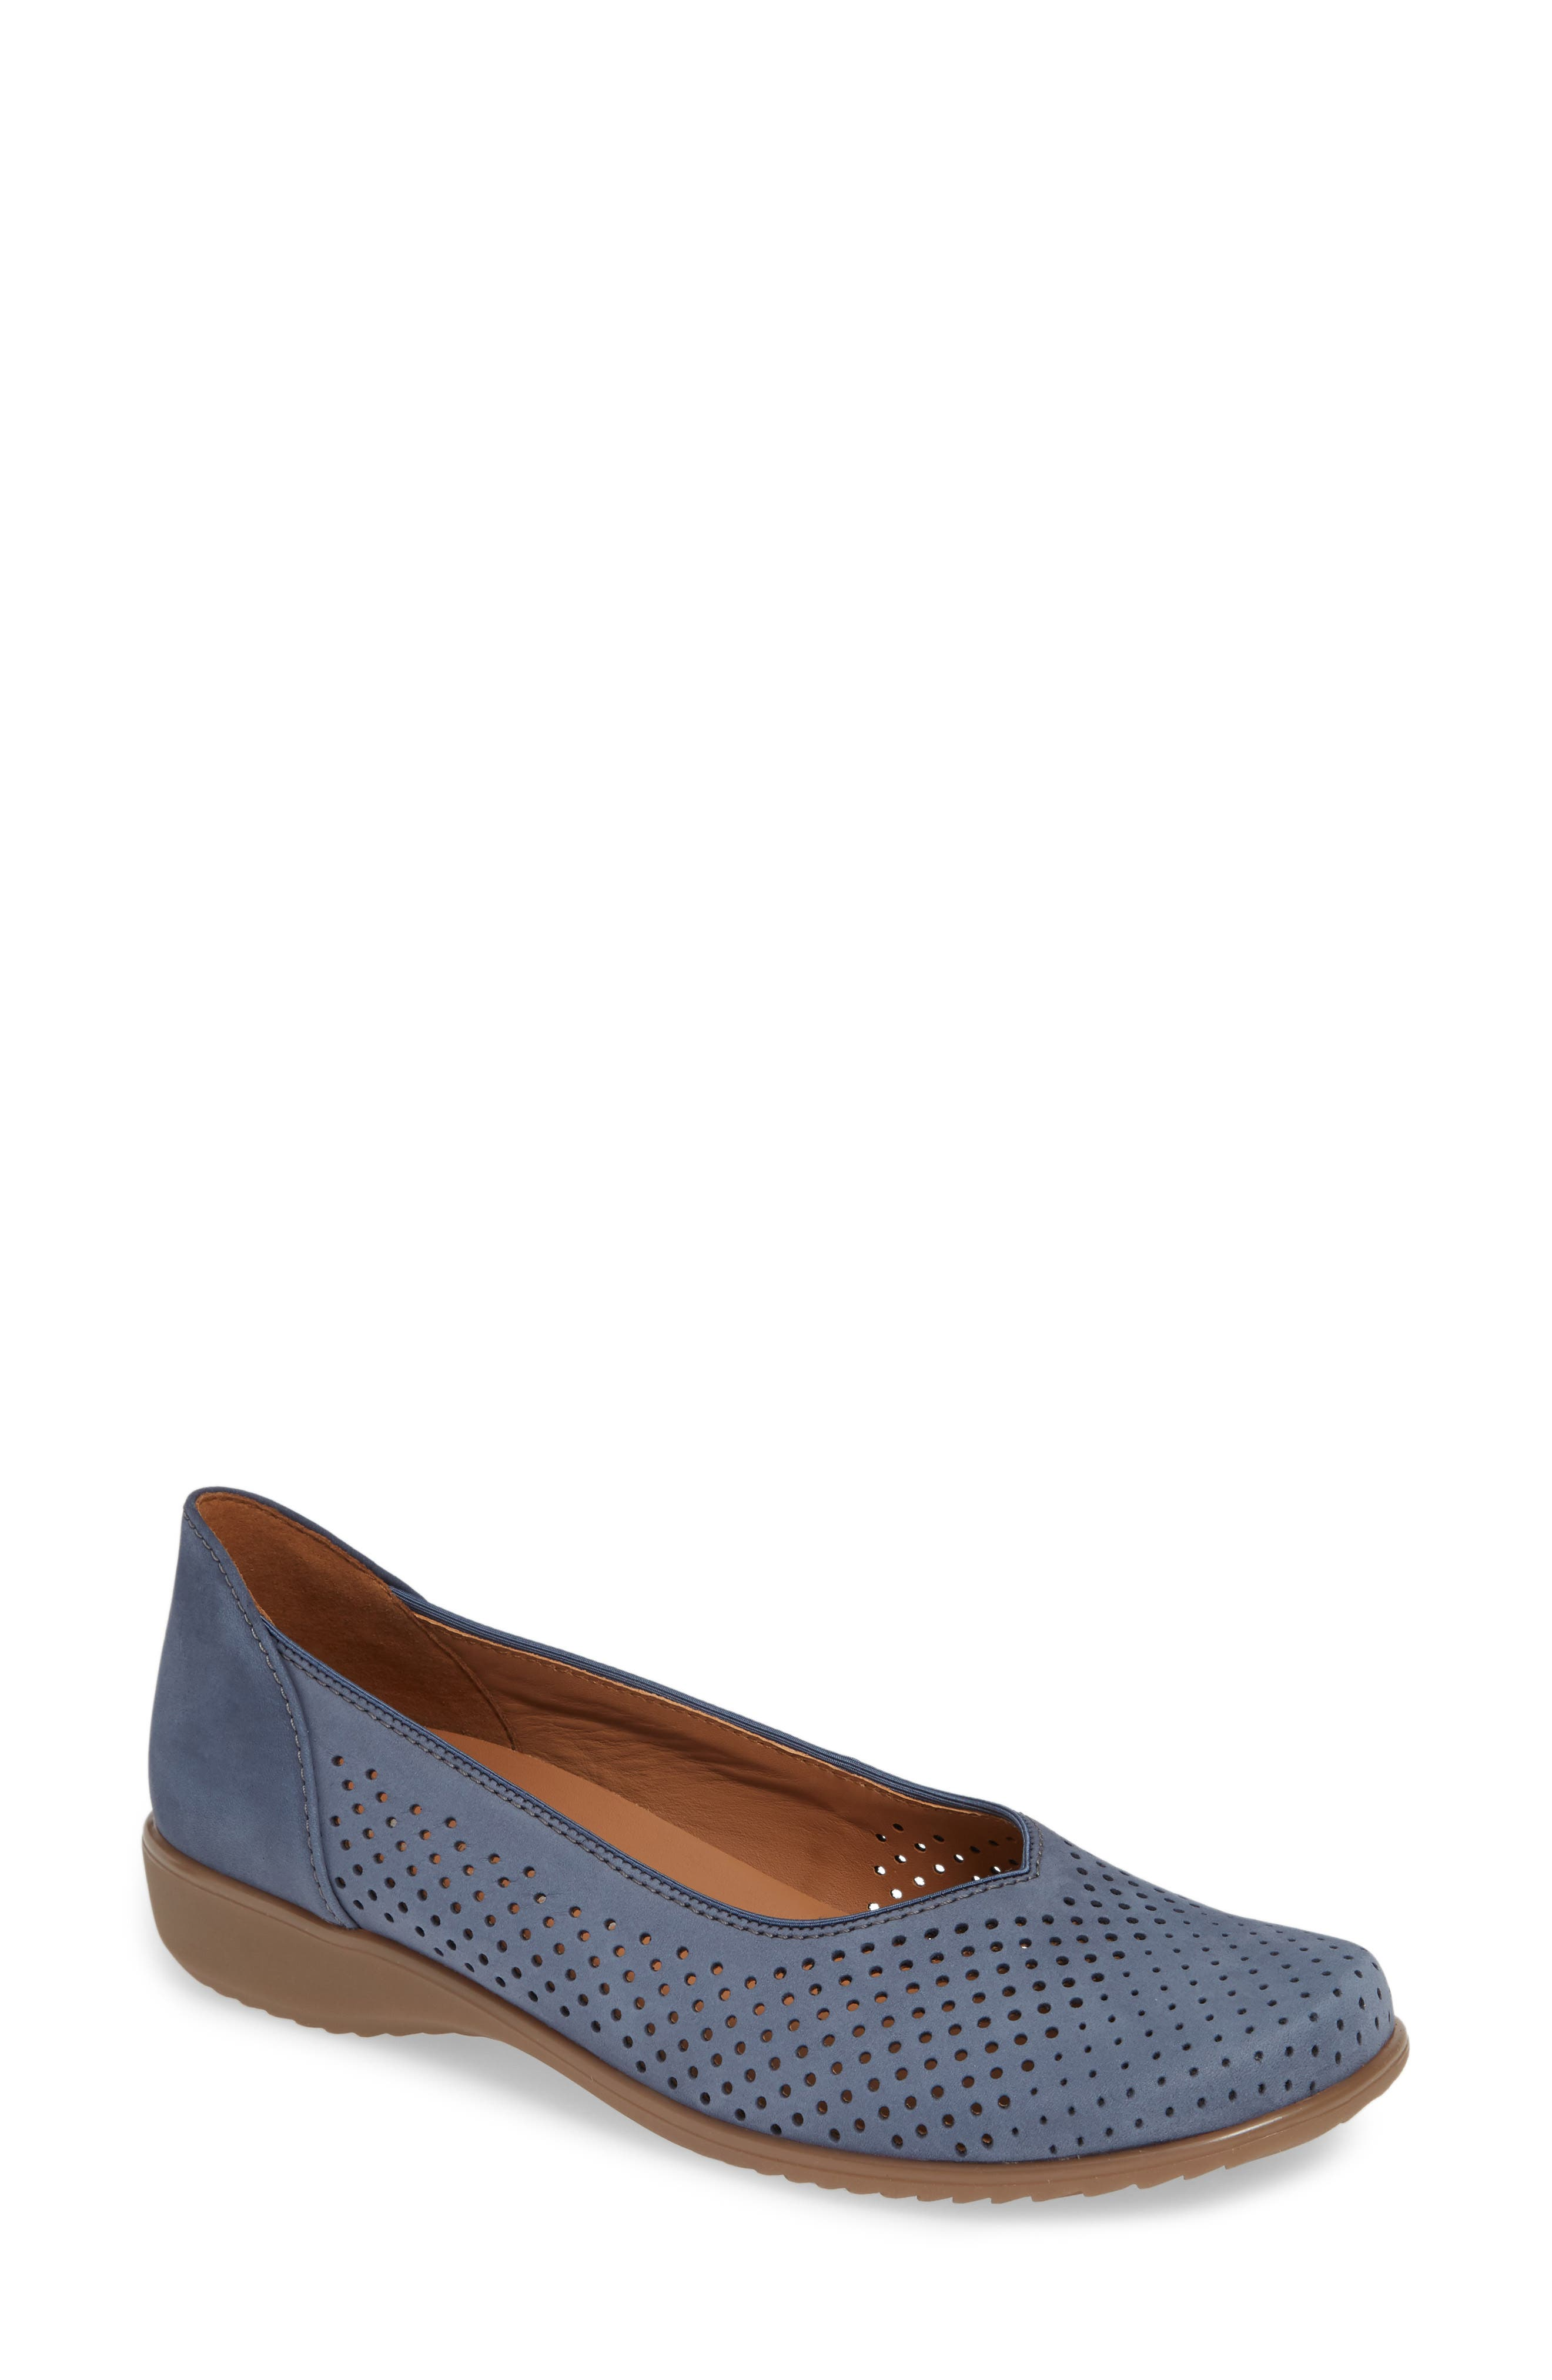 ARA Avril Perforated Flat, Main, color, JEANS NUBUCK LEATHER